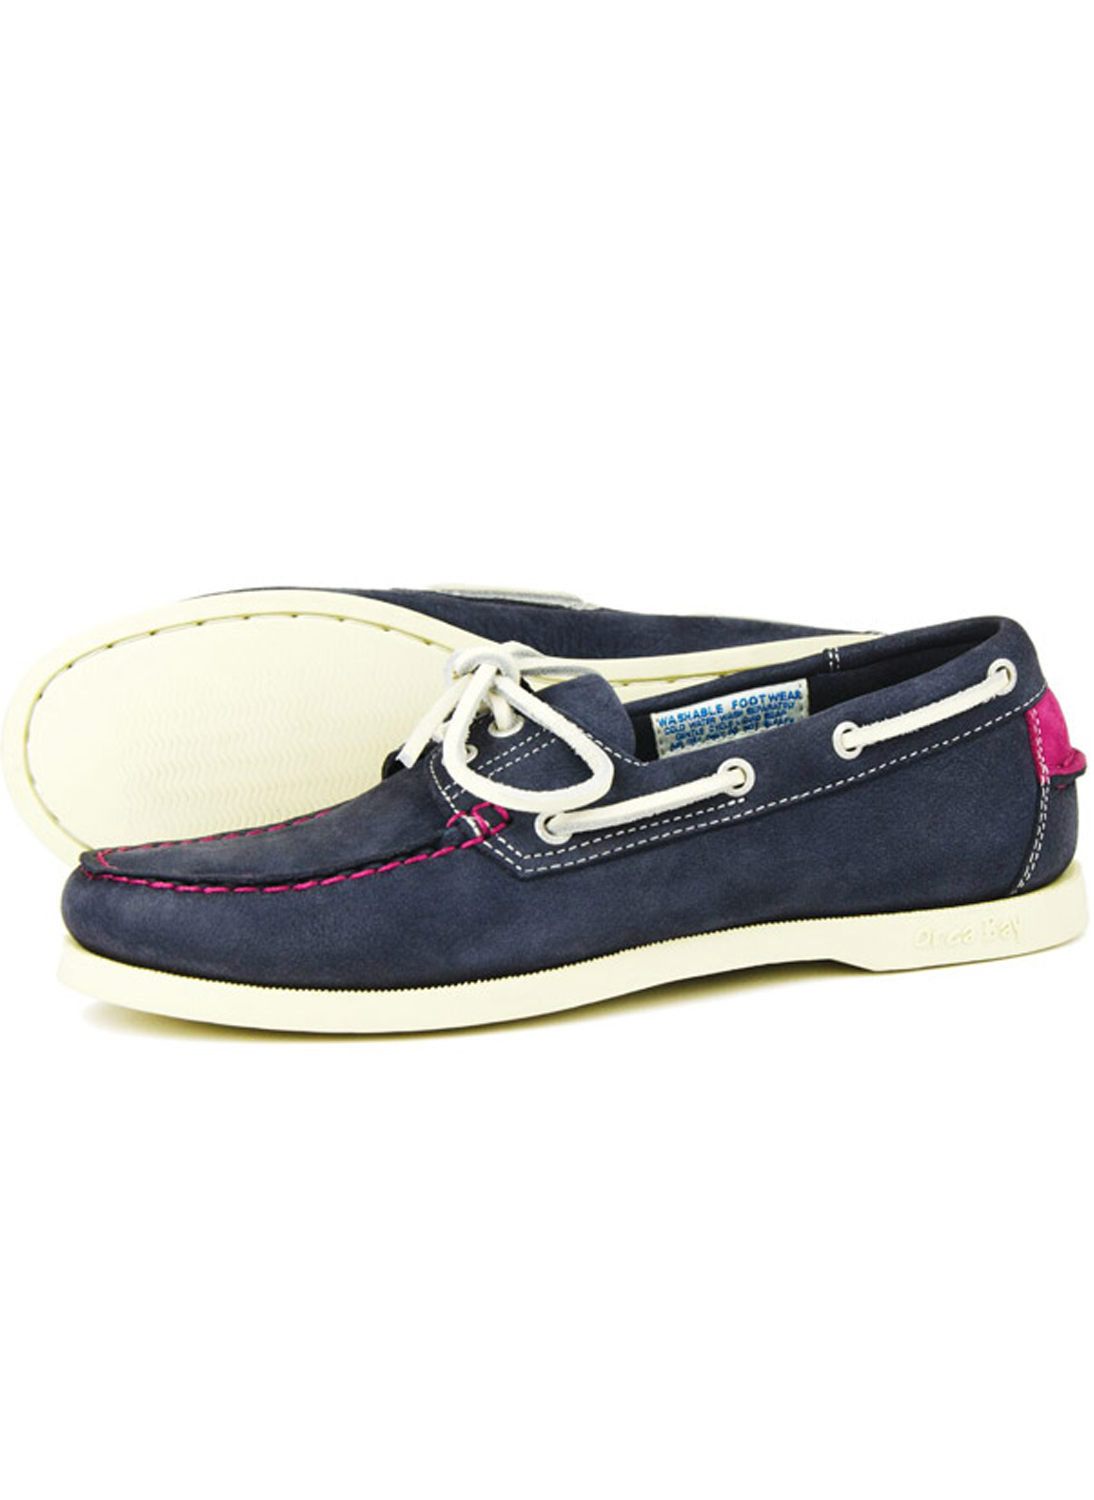 4a28479122c76 ... Ladies Footwear / Orca Bay Sandusky Machine Washable Indigo Deep Pink  Deck Shoes. orcabay-sandusky-indigo-pink-deckshoe-bredonhillshooting